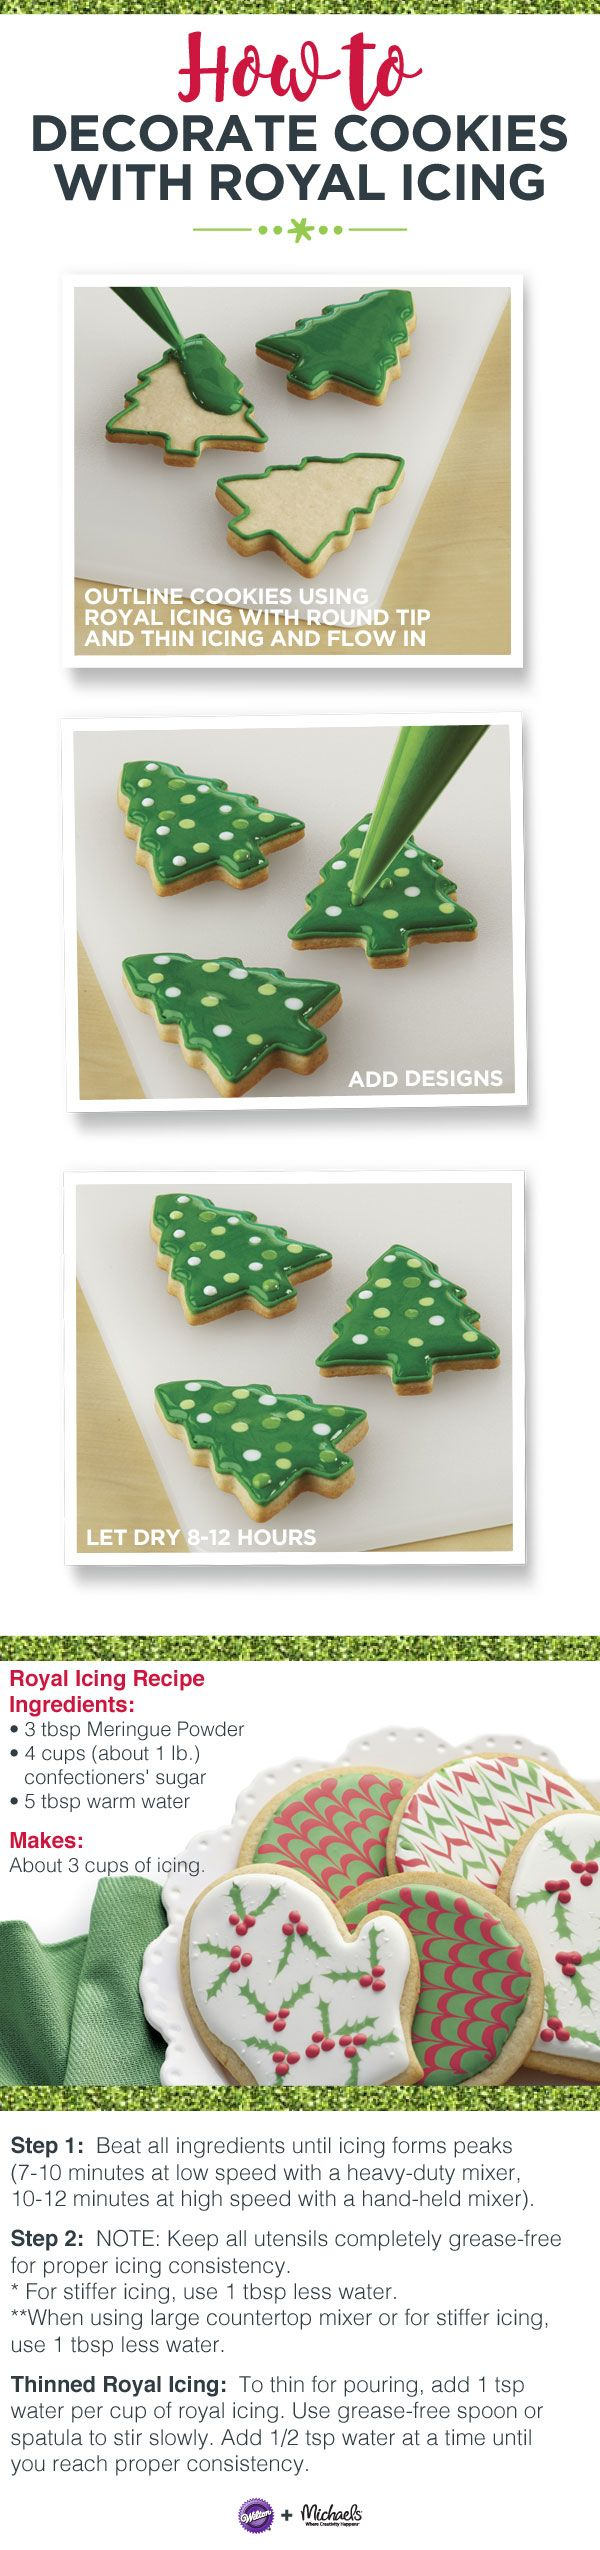 How to decorate cookies with royal icing